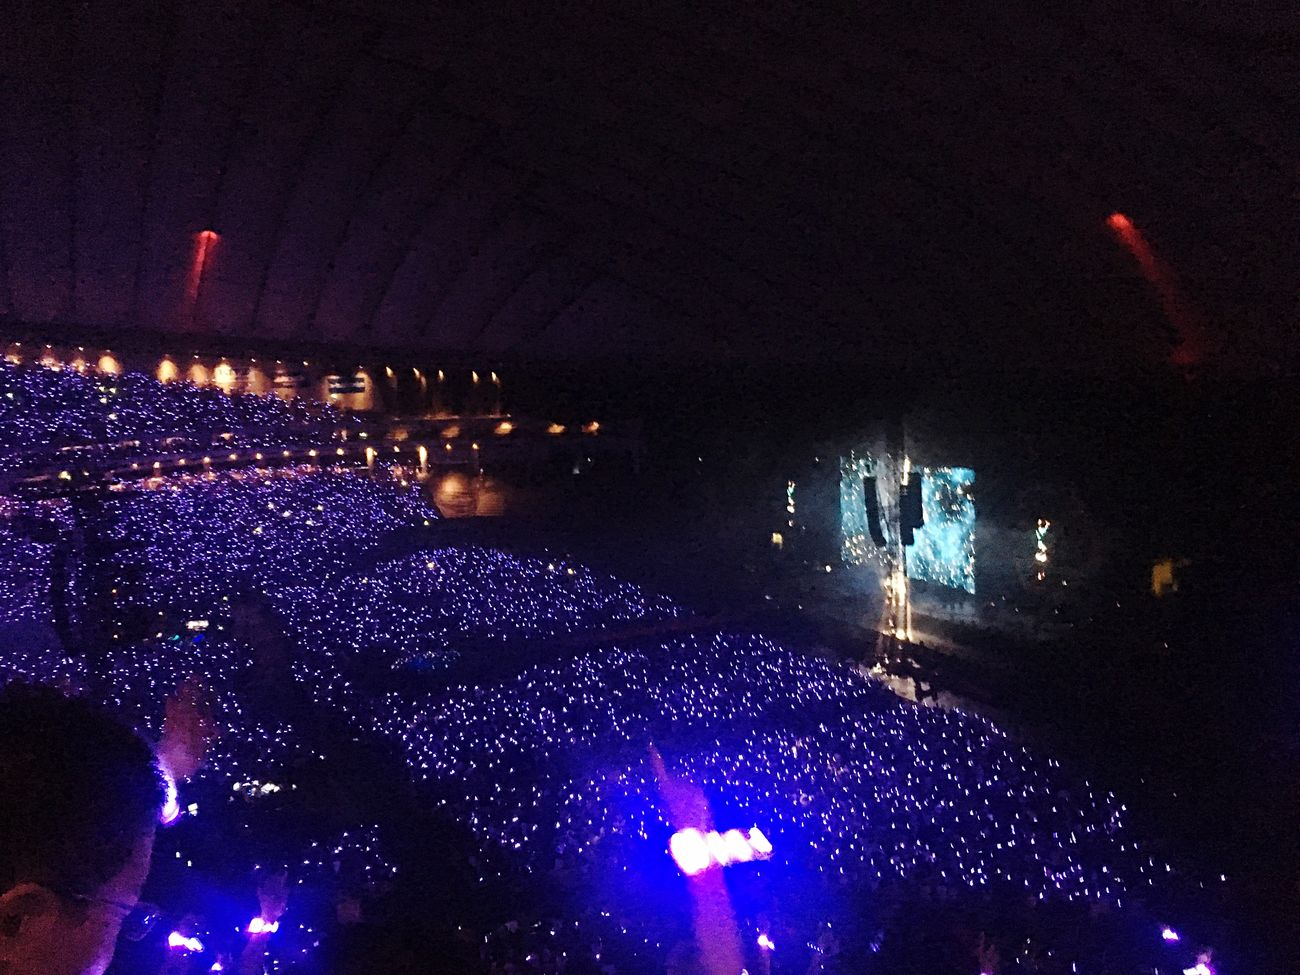 A Sky Full Of Stars Coldplay Coldplay Concert  Music Illuminated Live Music AHFODtour Stage Light Musician